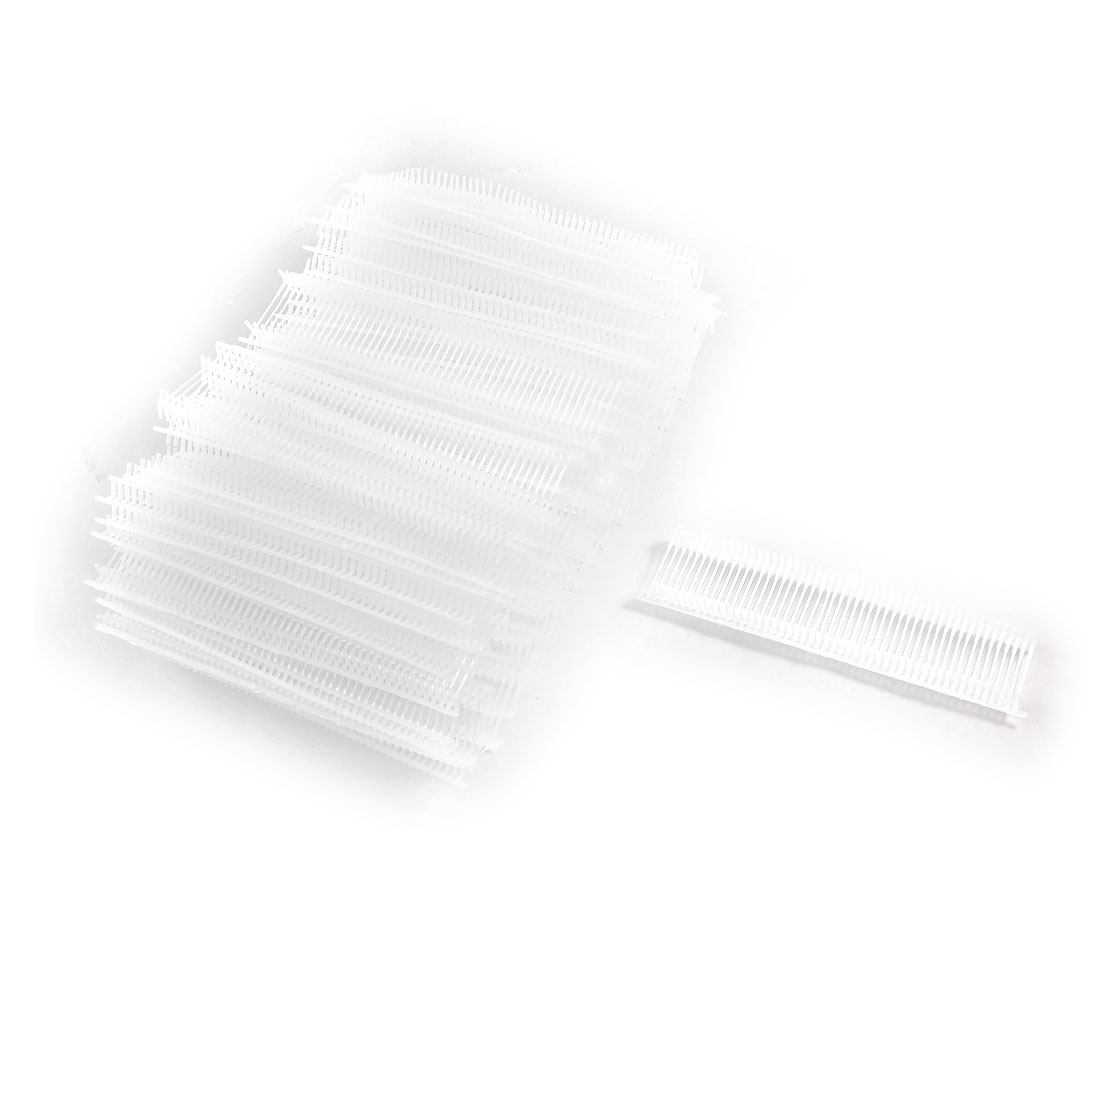 5000 x Labelling Gun Shoes Cloth Polypropylene PP Price Tag Pins Barbs 25mm